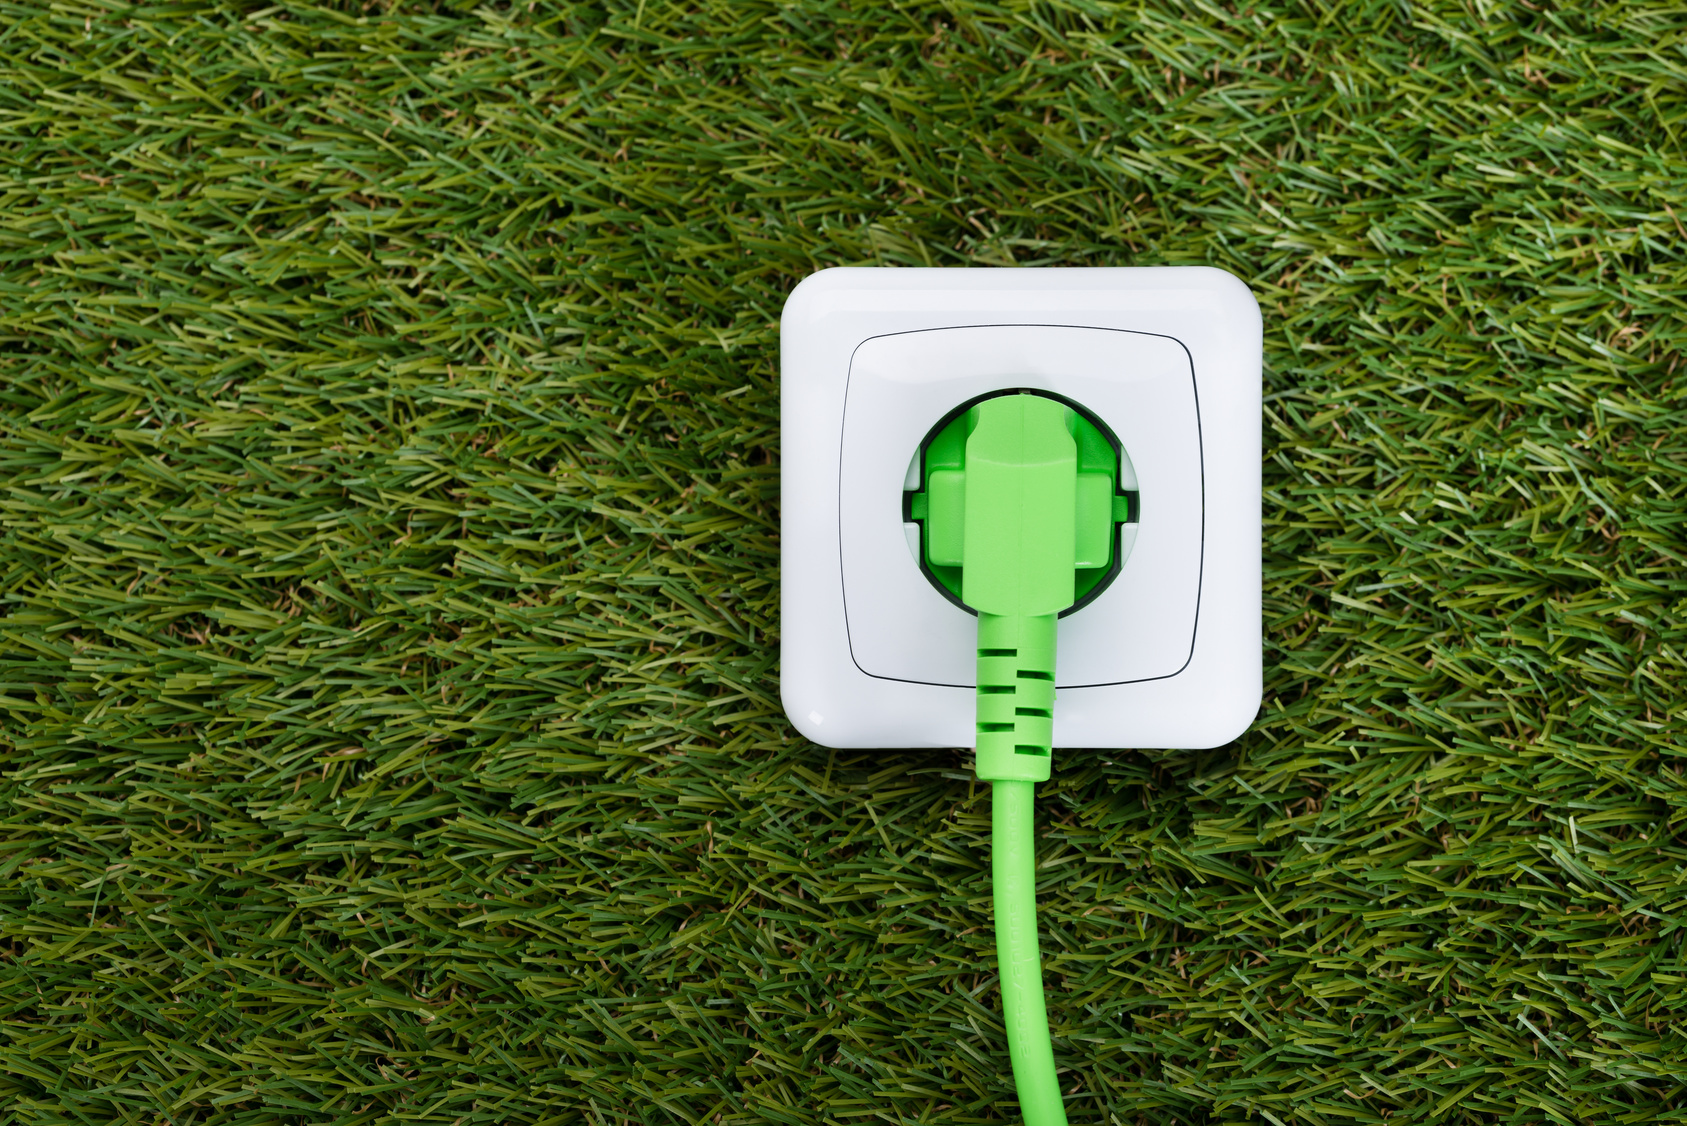 Closeup of green plug in outlet on grass